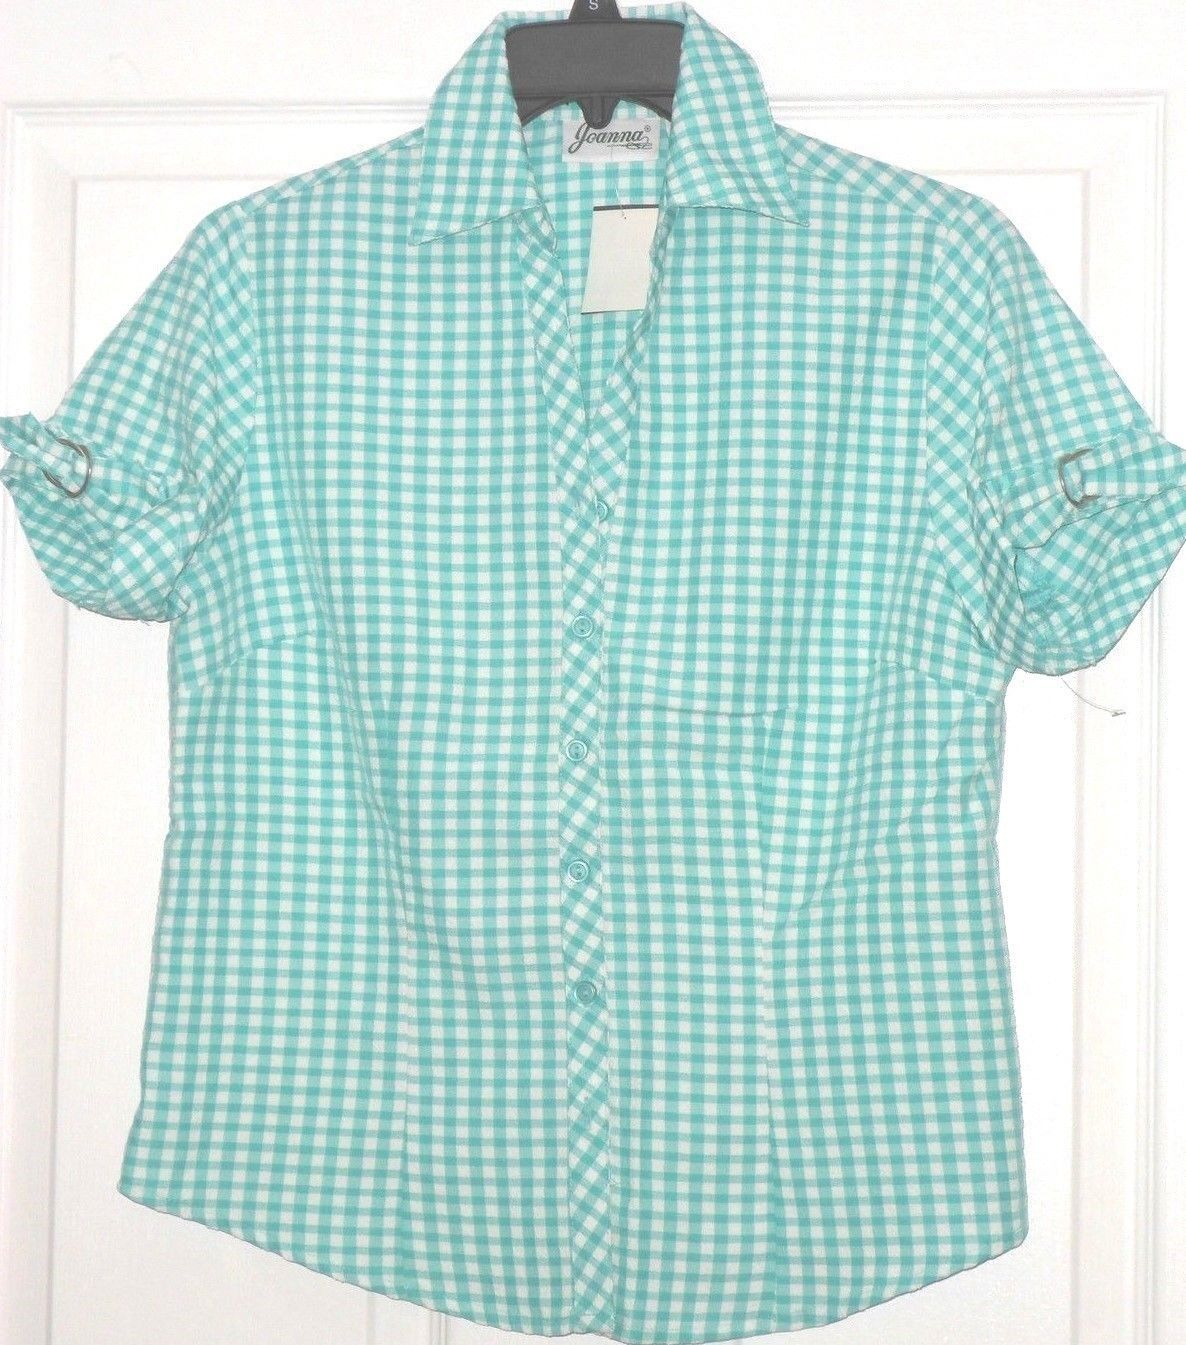 JOANNA BLOUSE SIZE S AQUA WHITE CHECK LIGHTWEIGHT NWT